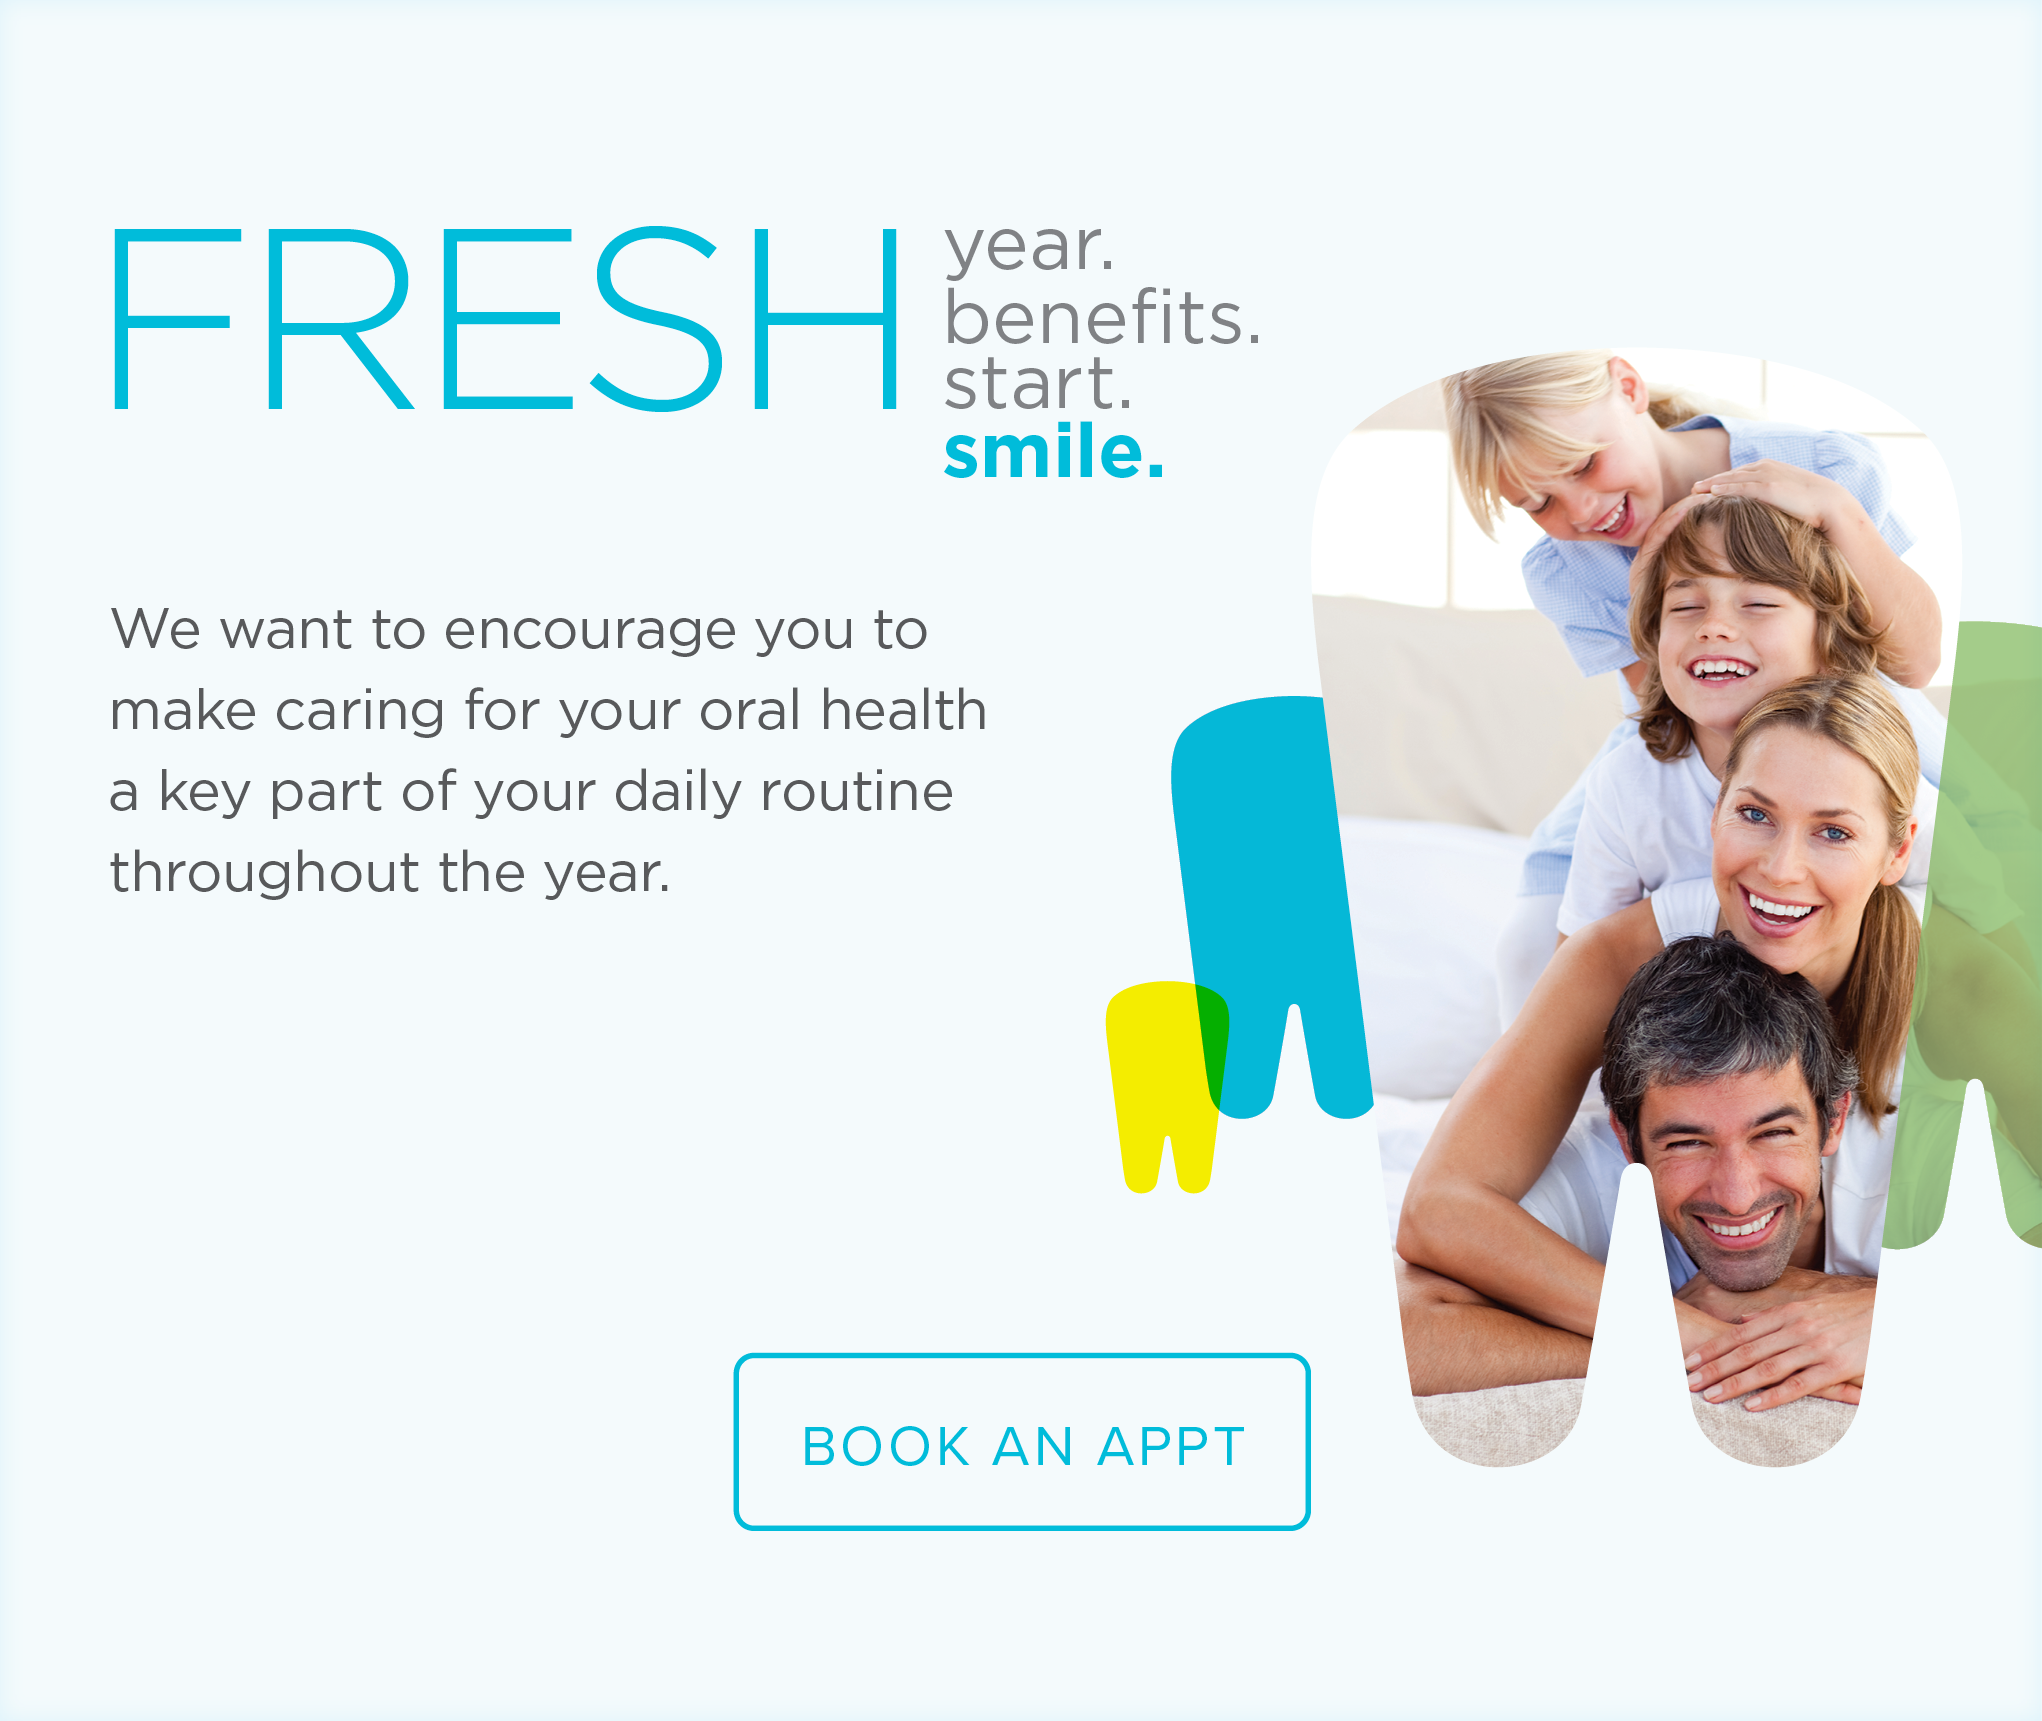 Walnut Creek Dental Group and Orthodontics - Make the Most of Your Benefits